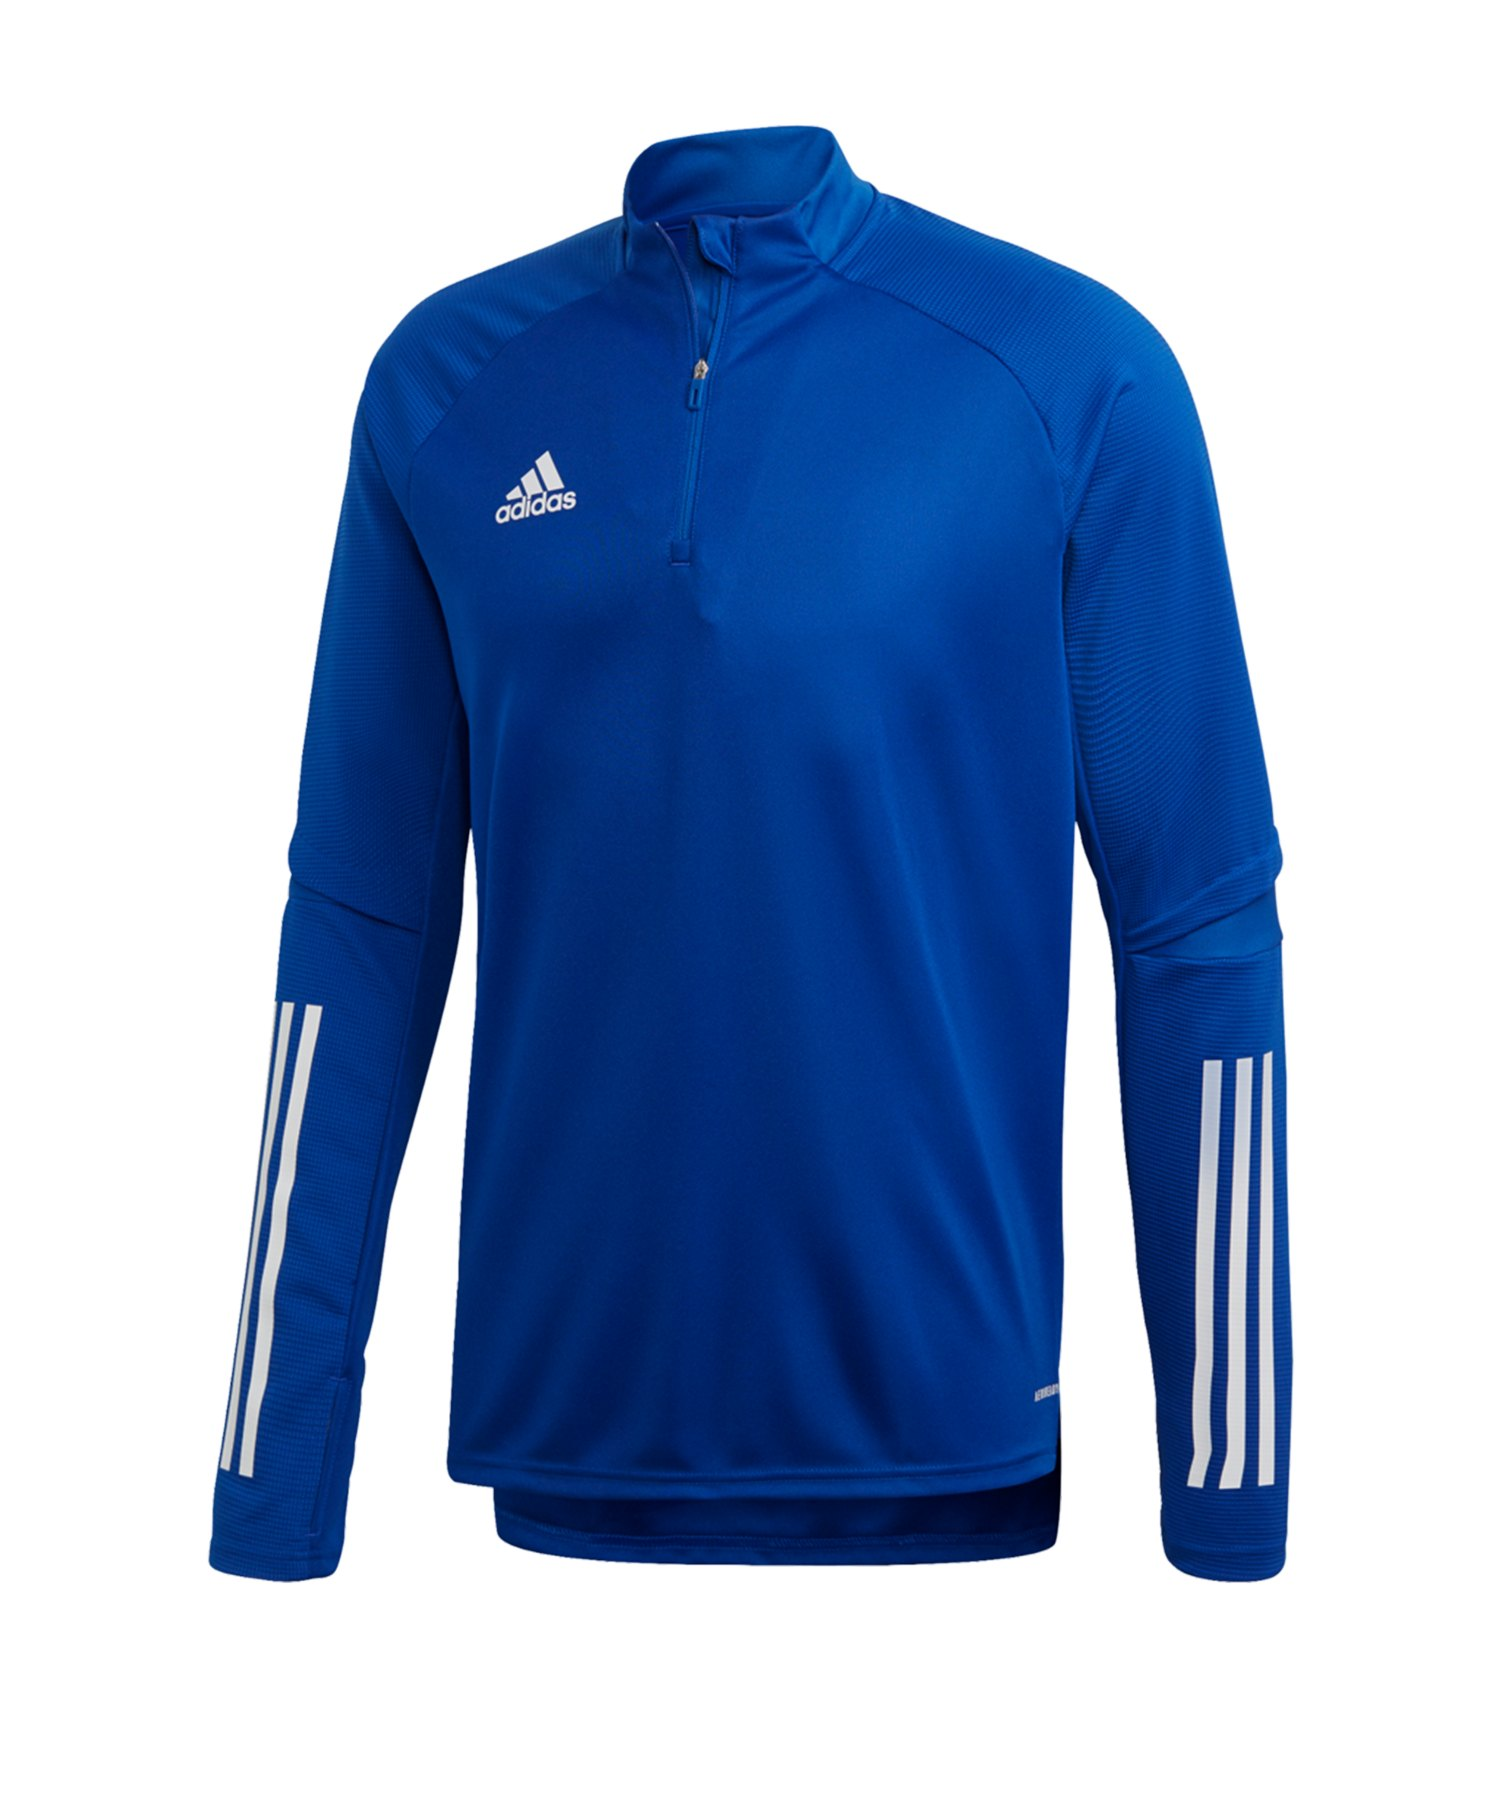 adidas Condivo 20 Trainingstop Blau Weiss - blau